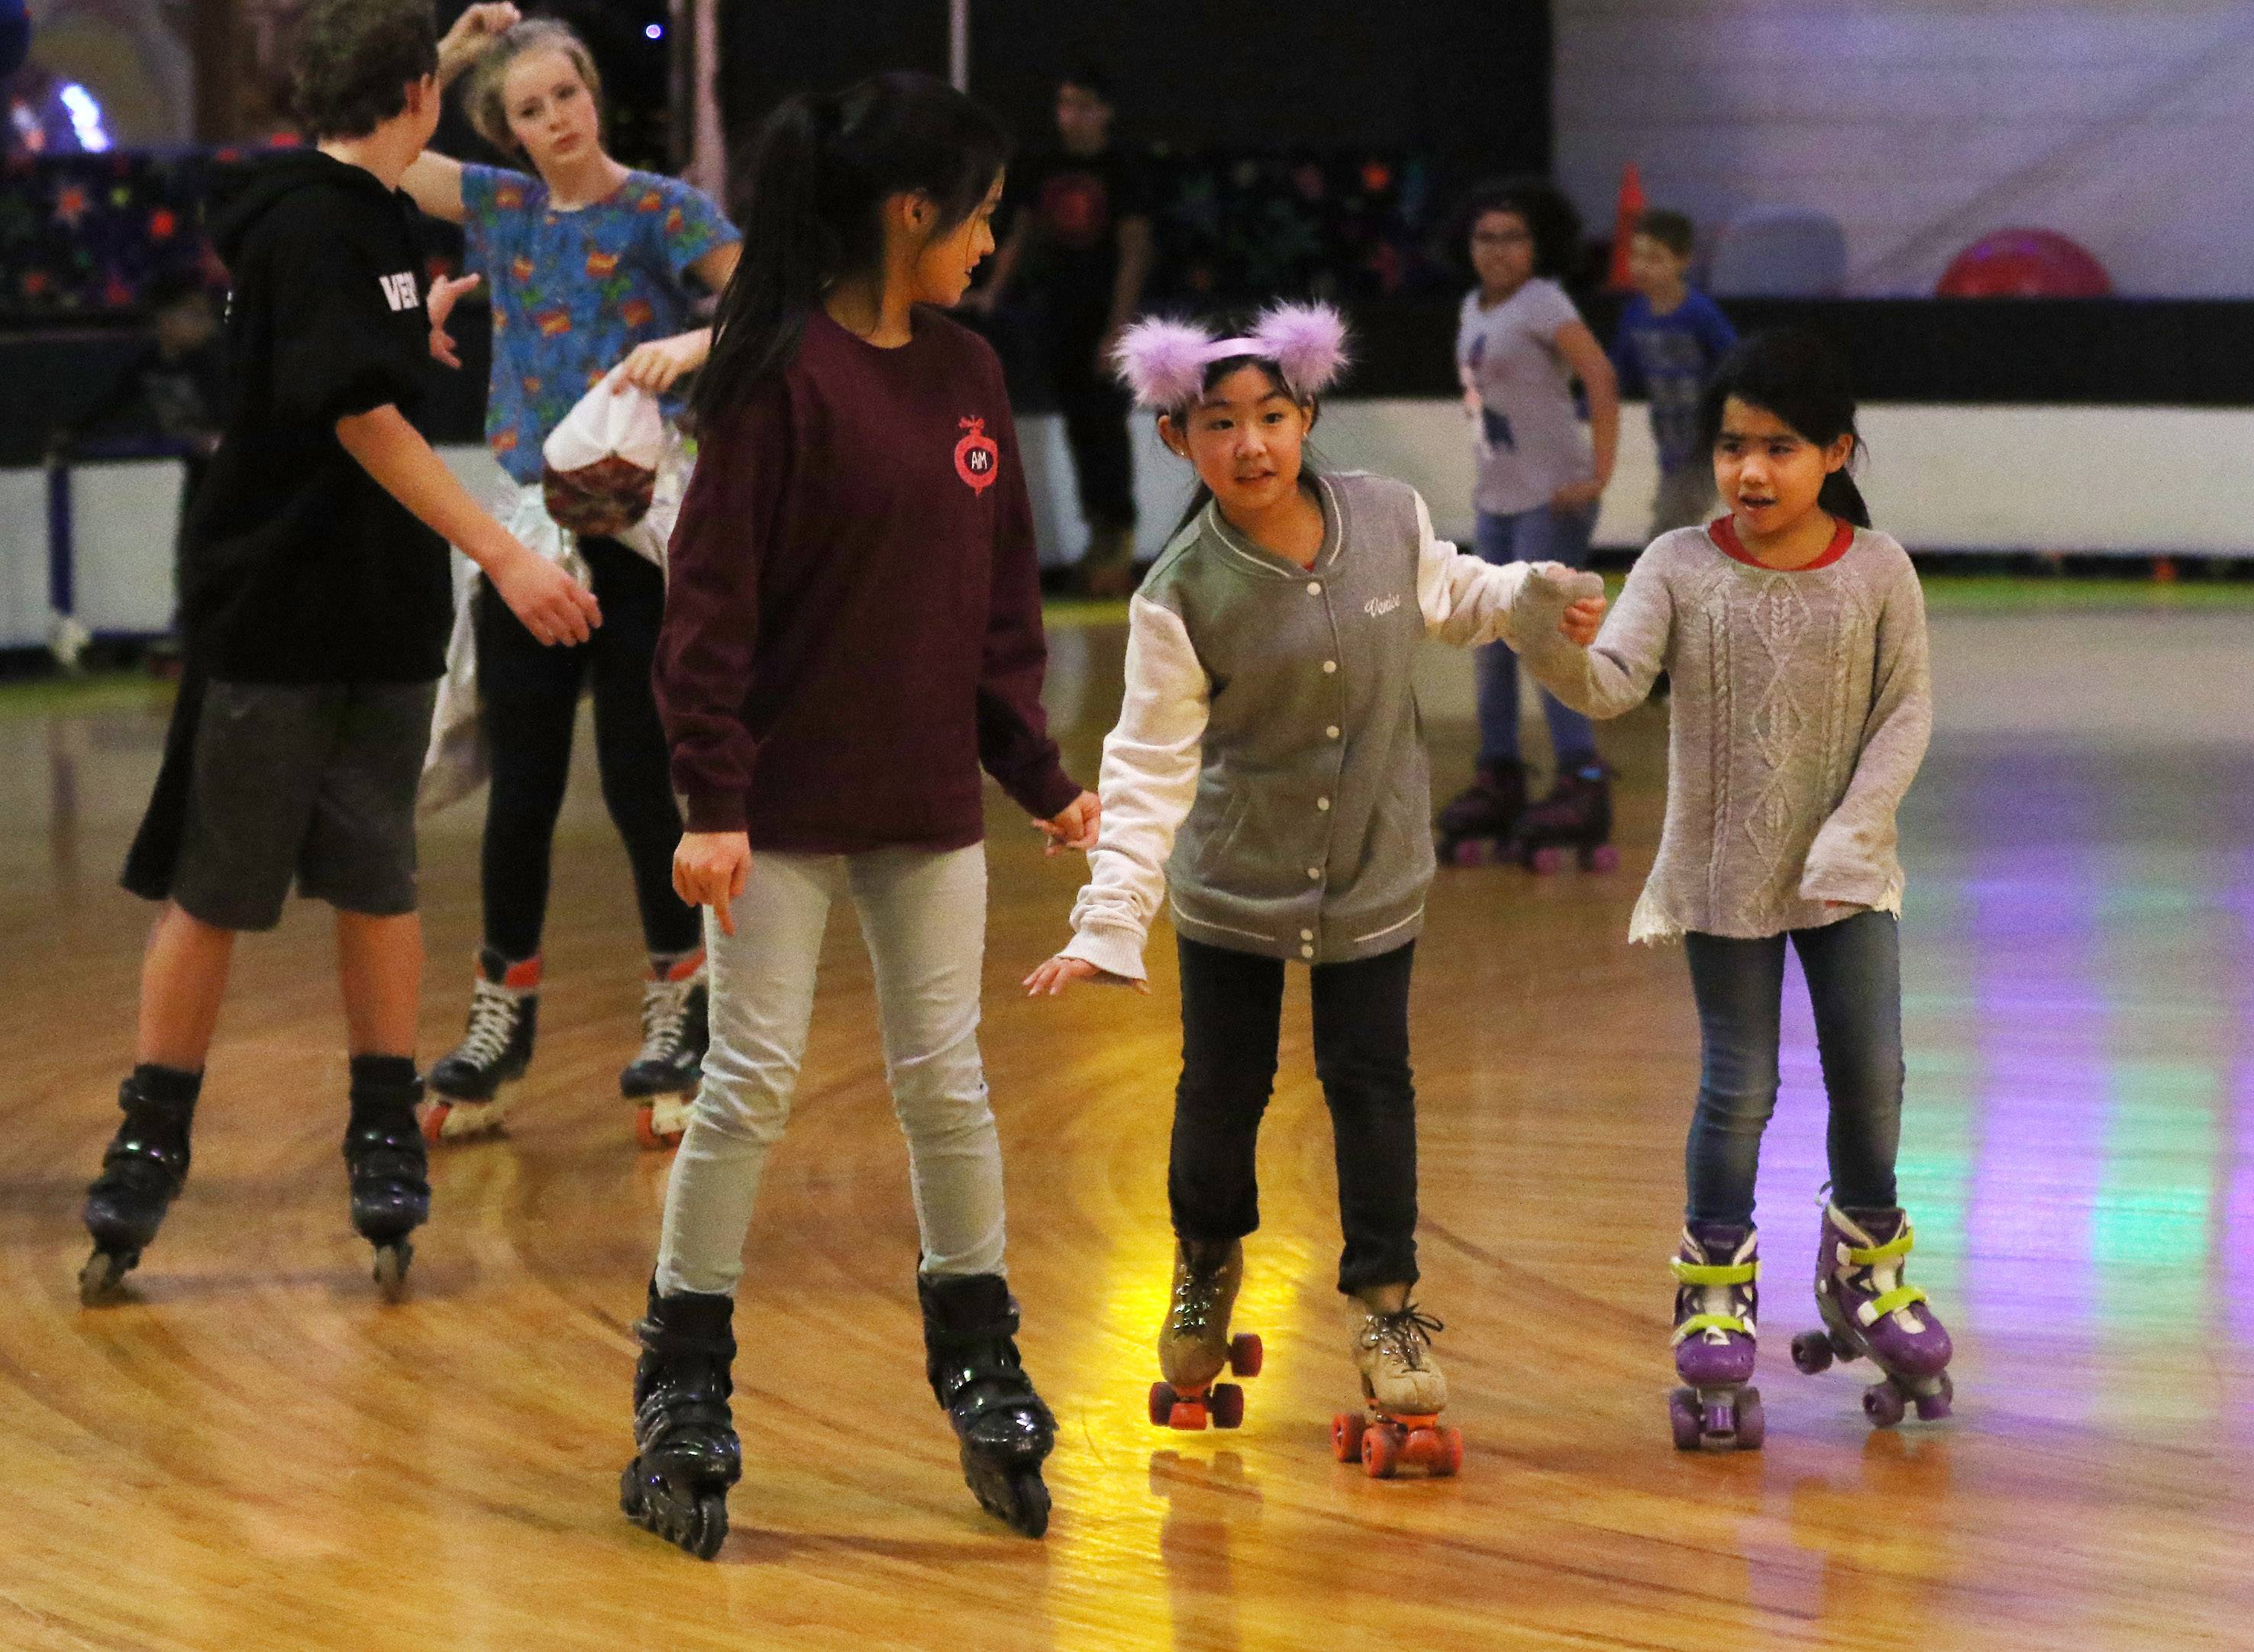 Orbit Skate Center in Palatine, which opened in 1972, will close March 31. Its owner declined to disclose the building's new owner but said its days as a roller skating rink are done.